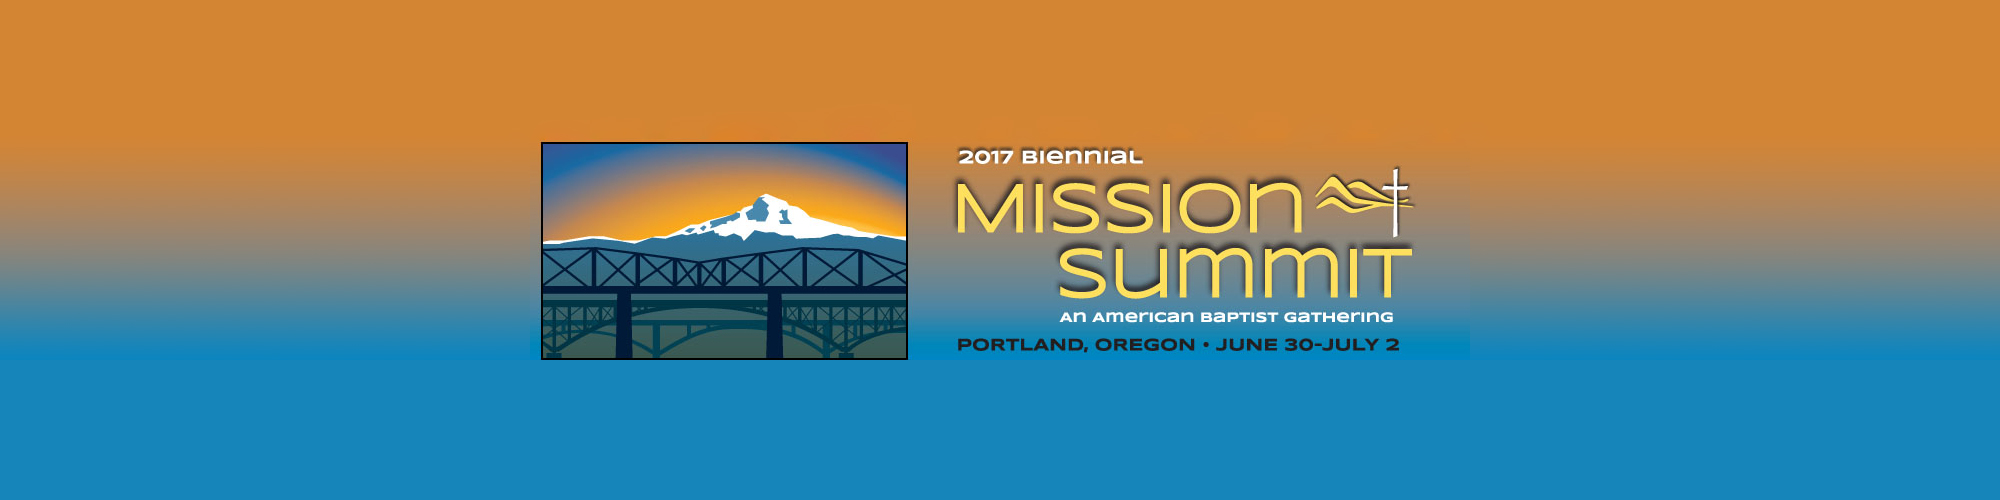 2017 Biennial Mission Summit Church Sponsorship